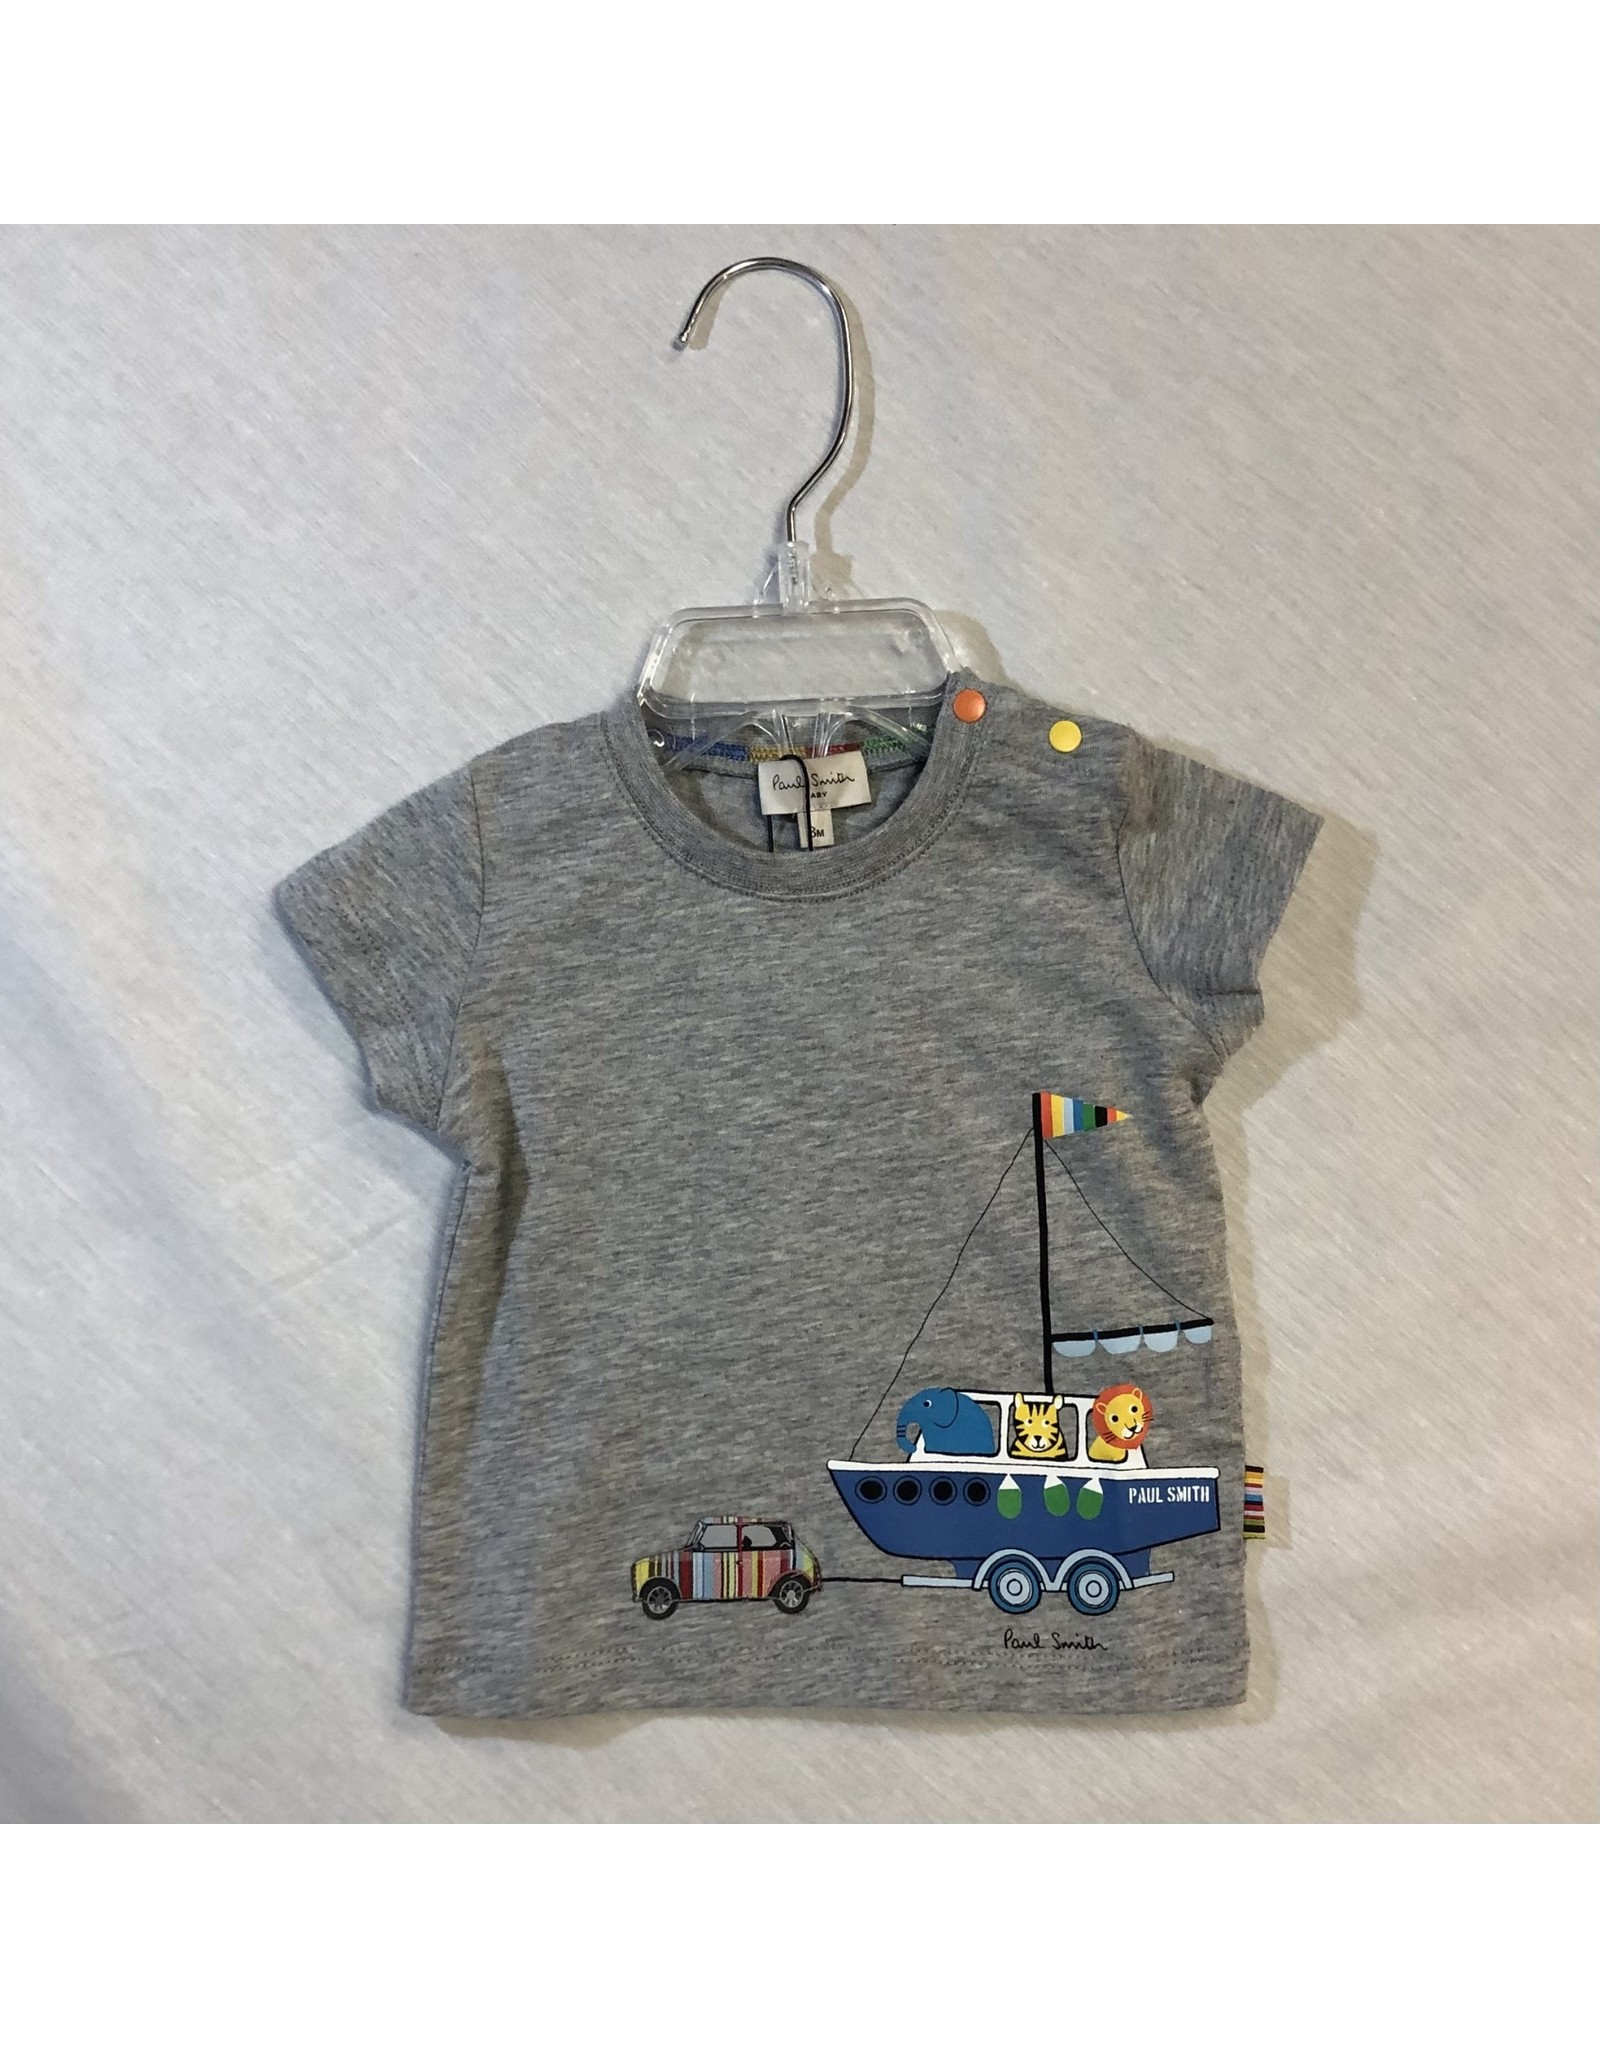 Paul Smith Animal Boating T-Shirt